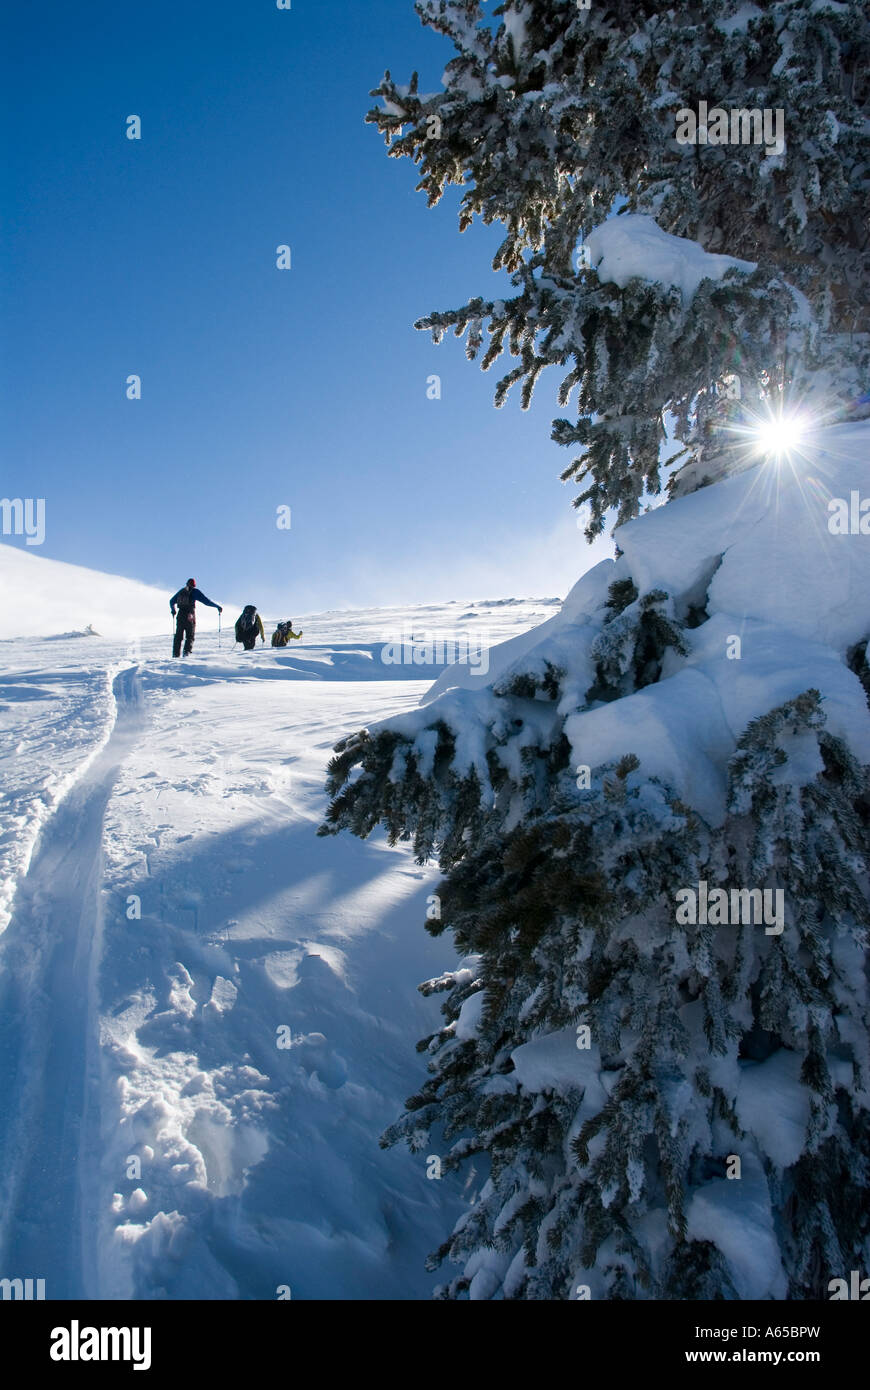 Backcountry skiers in the mountains, Colorado - Stock Image